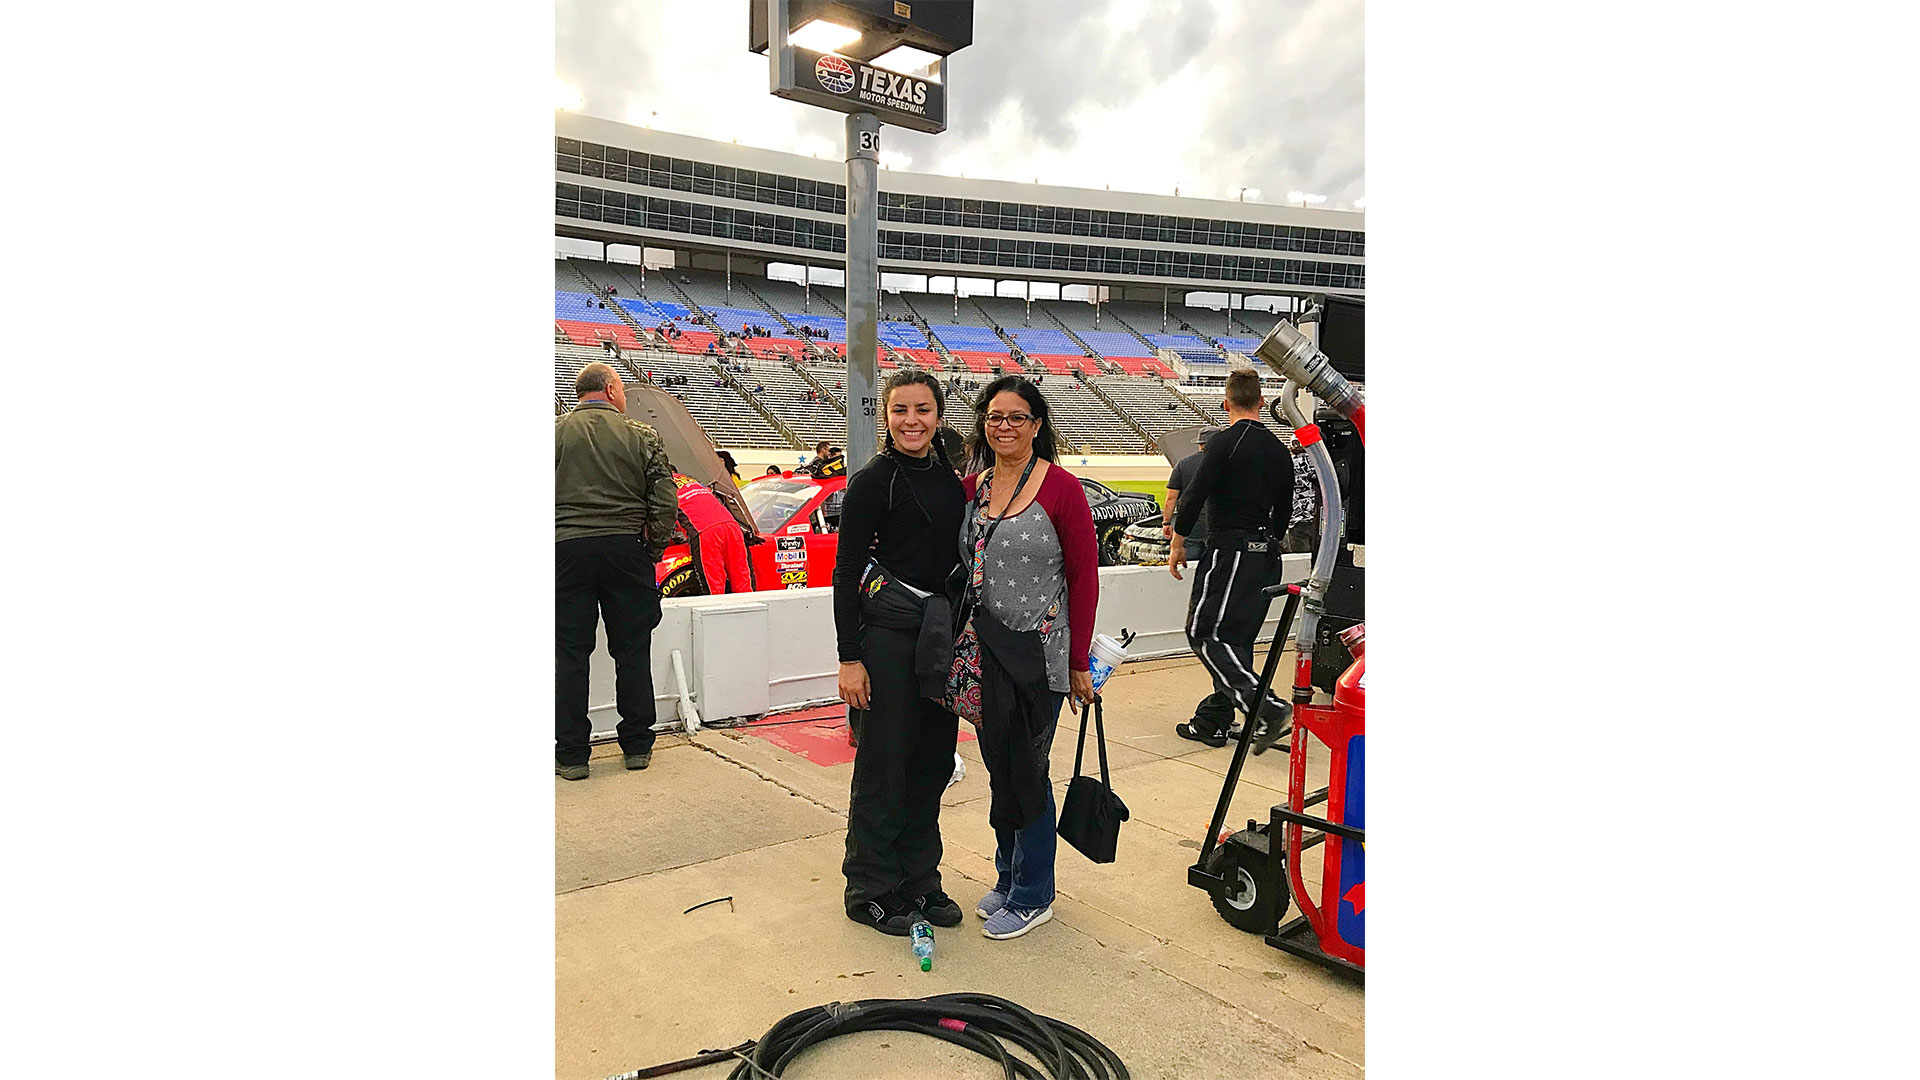 Breanna O'Leary and Her Mom